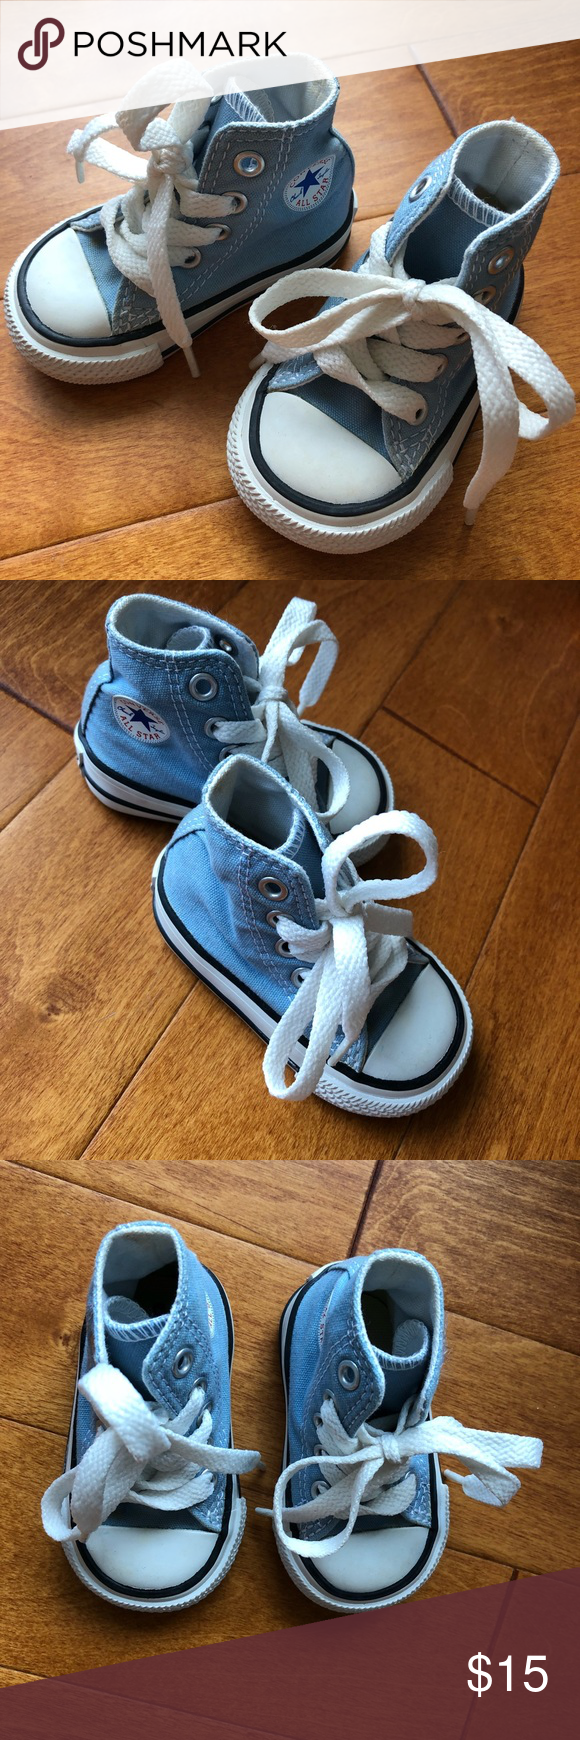 Infant Converse Baby Blue Hard Sole Shoes b927fabf9